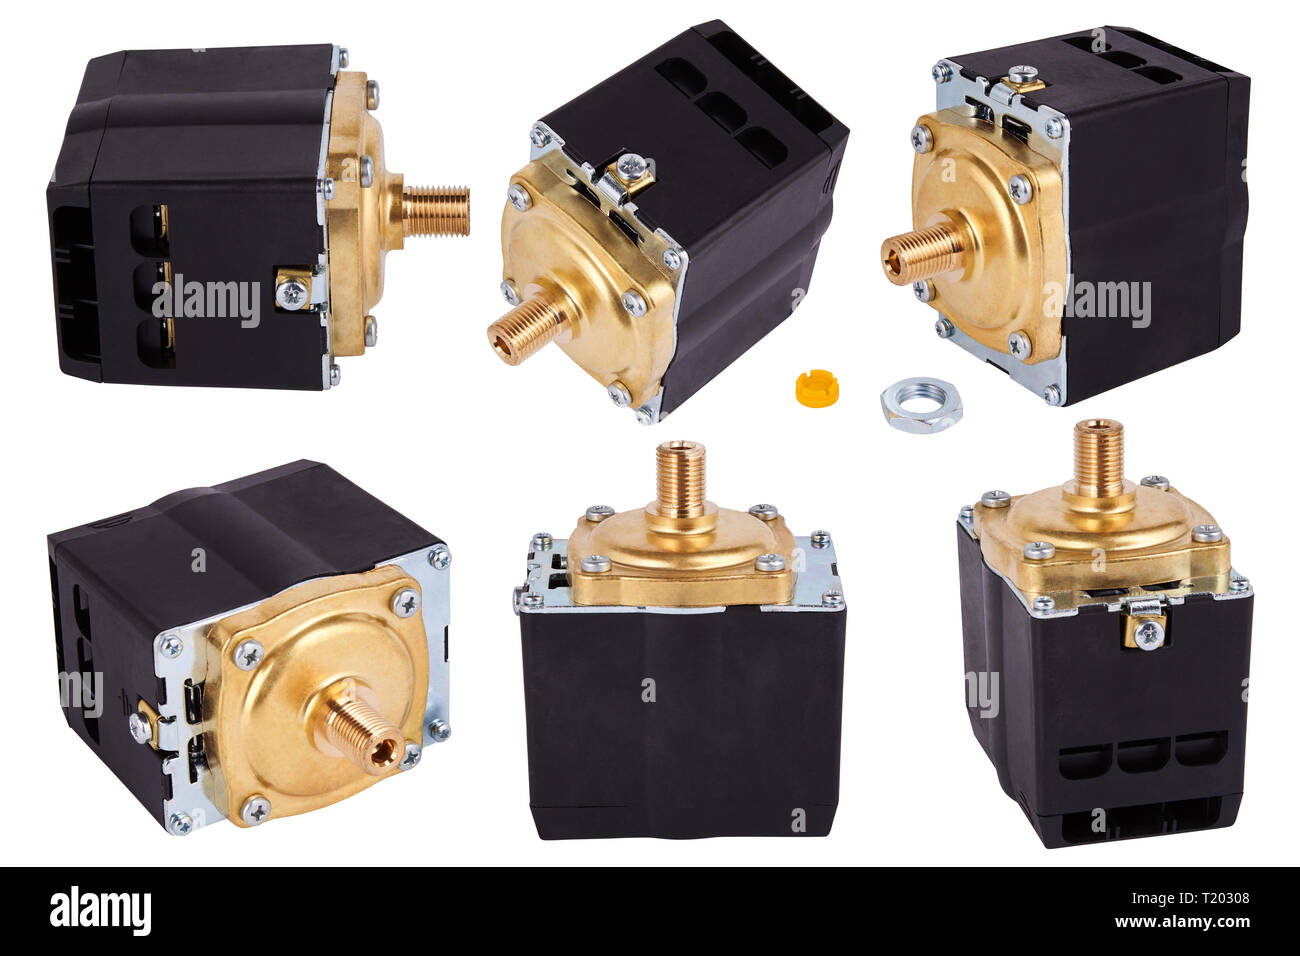 Three phase compressors. Pressure switch Control. Pressure switch for compressor. Spare parts for professional coffeee machines. Isolated. - Stock Image